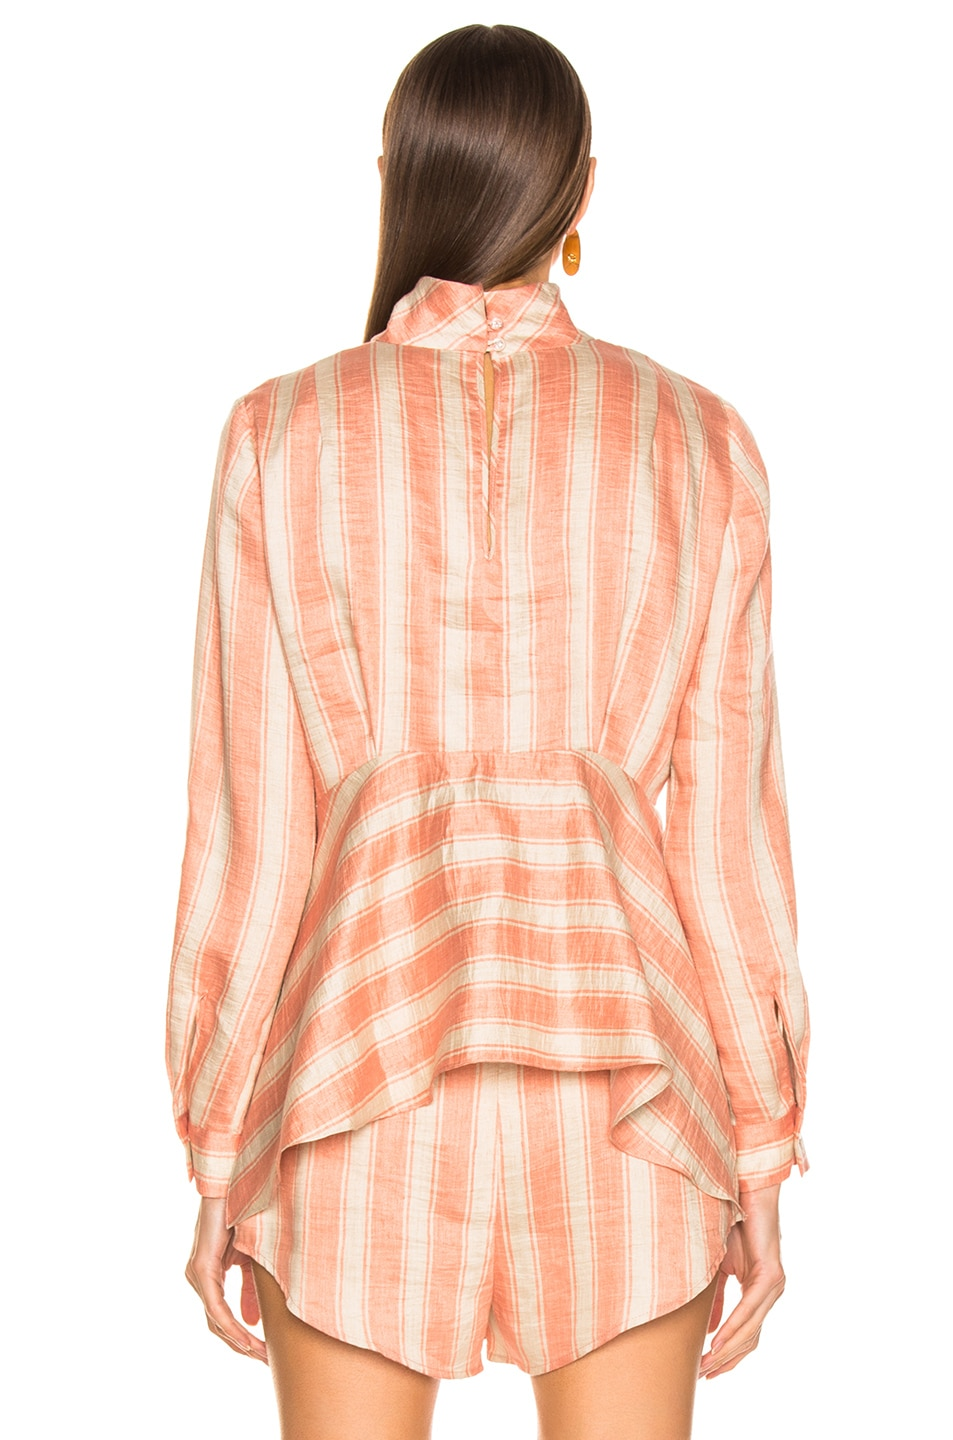 Image 3 of Rachel Comey Cultivate Top in Blush